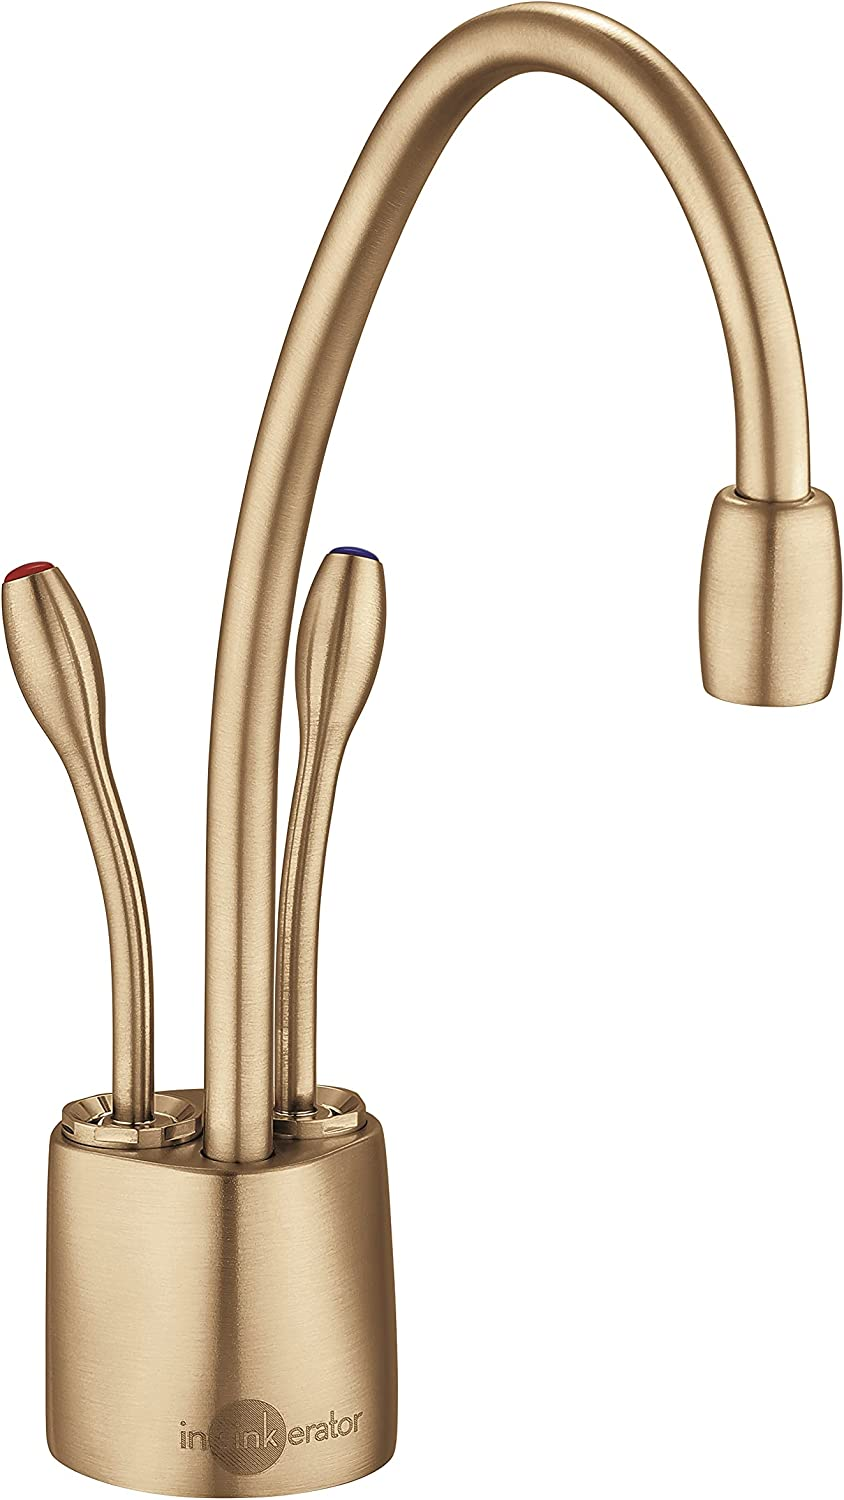 10 Classy Faucets You Must Explore Before Buying One